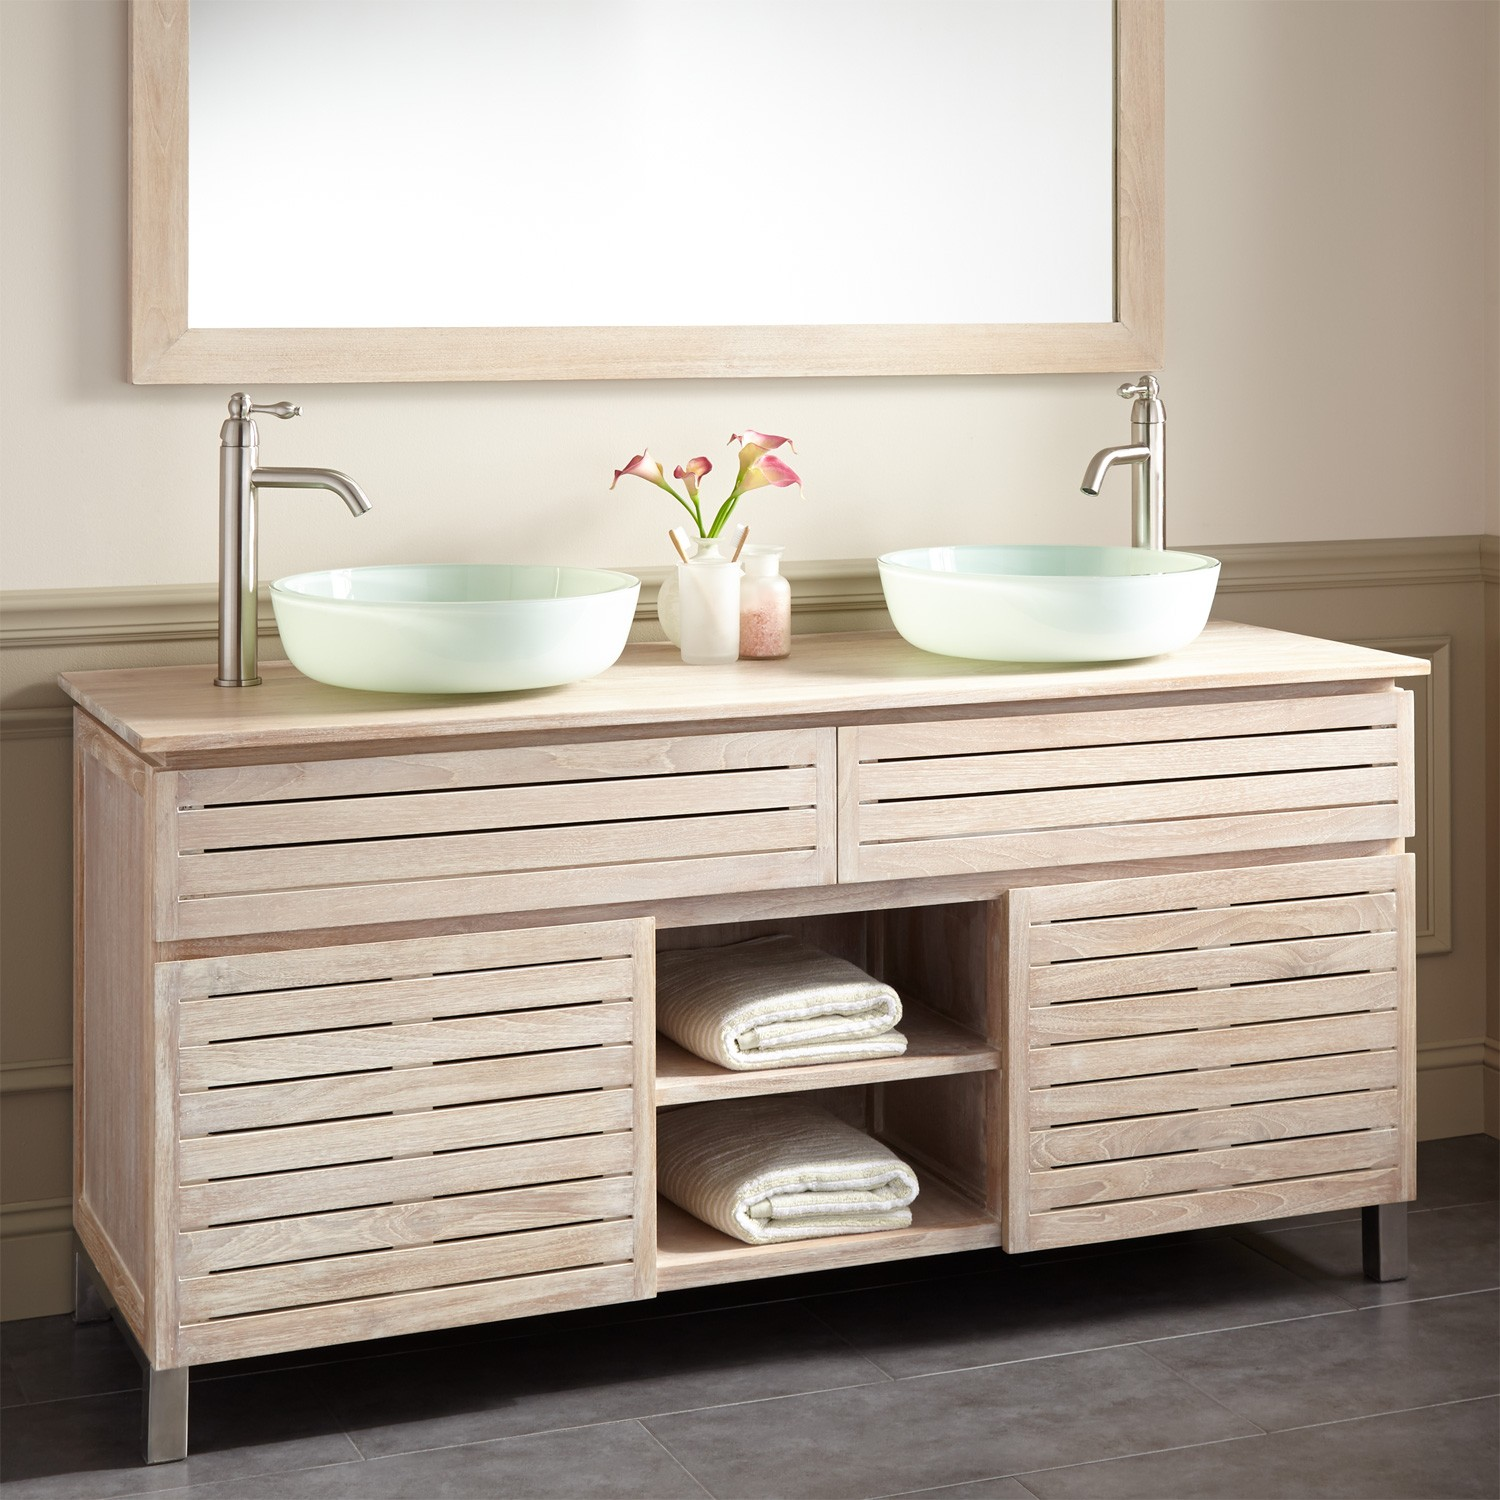 Image of: 60 Double Sink Vanity Design